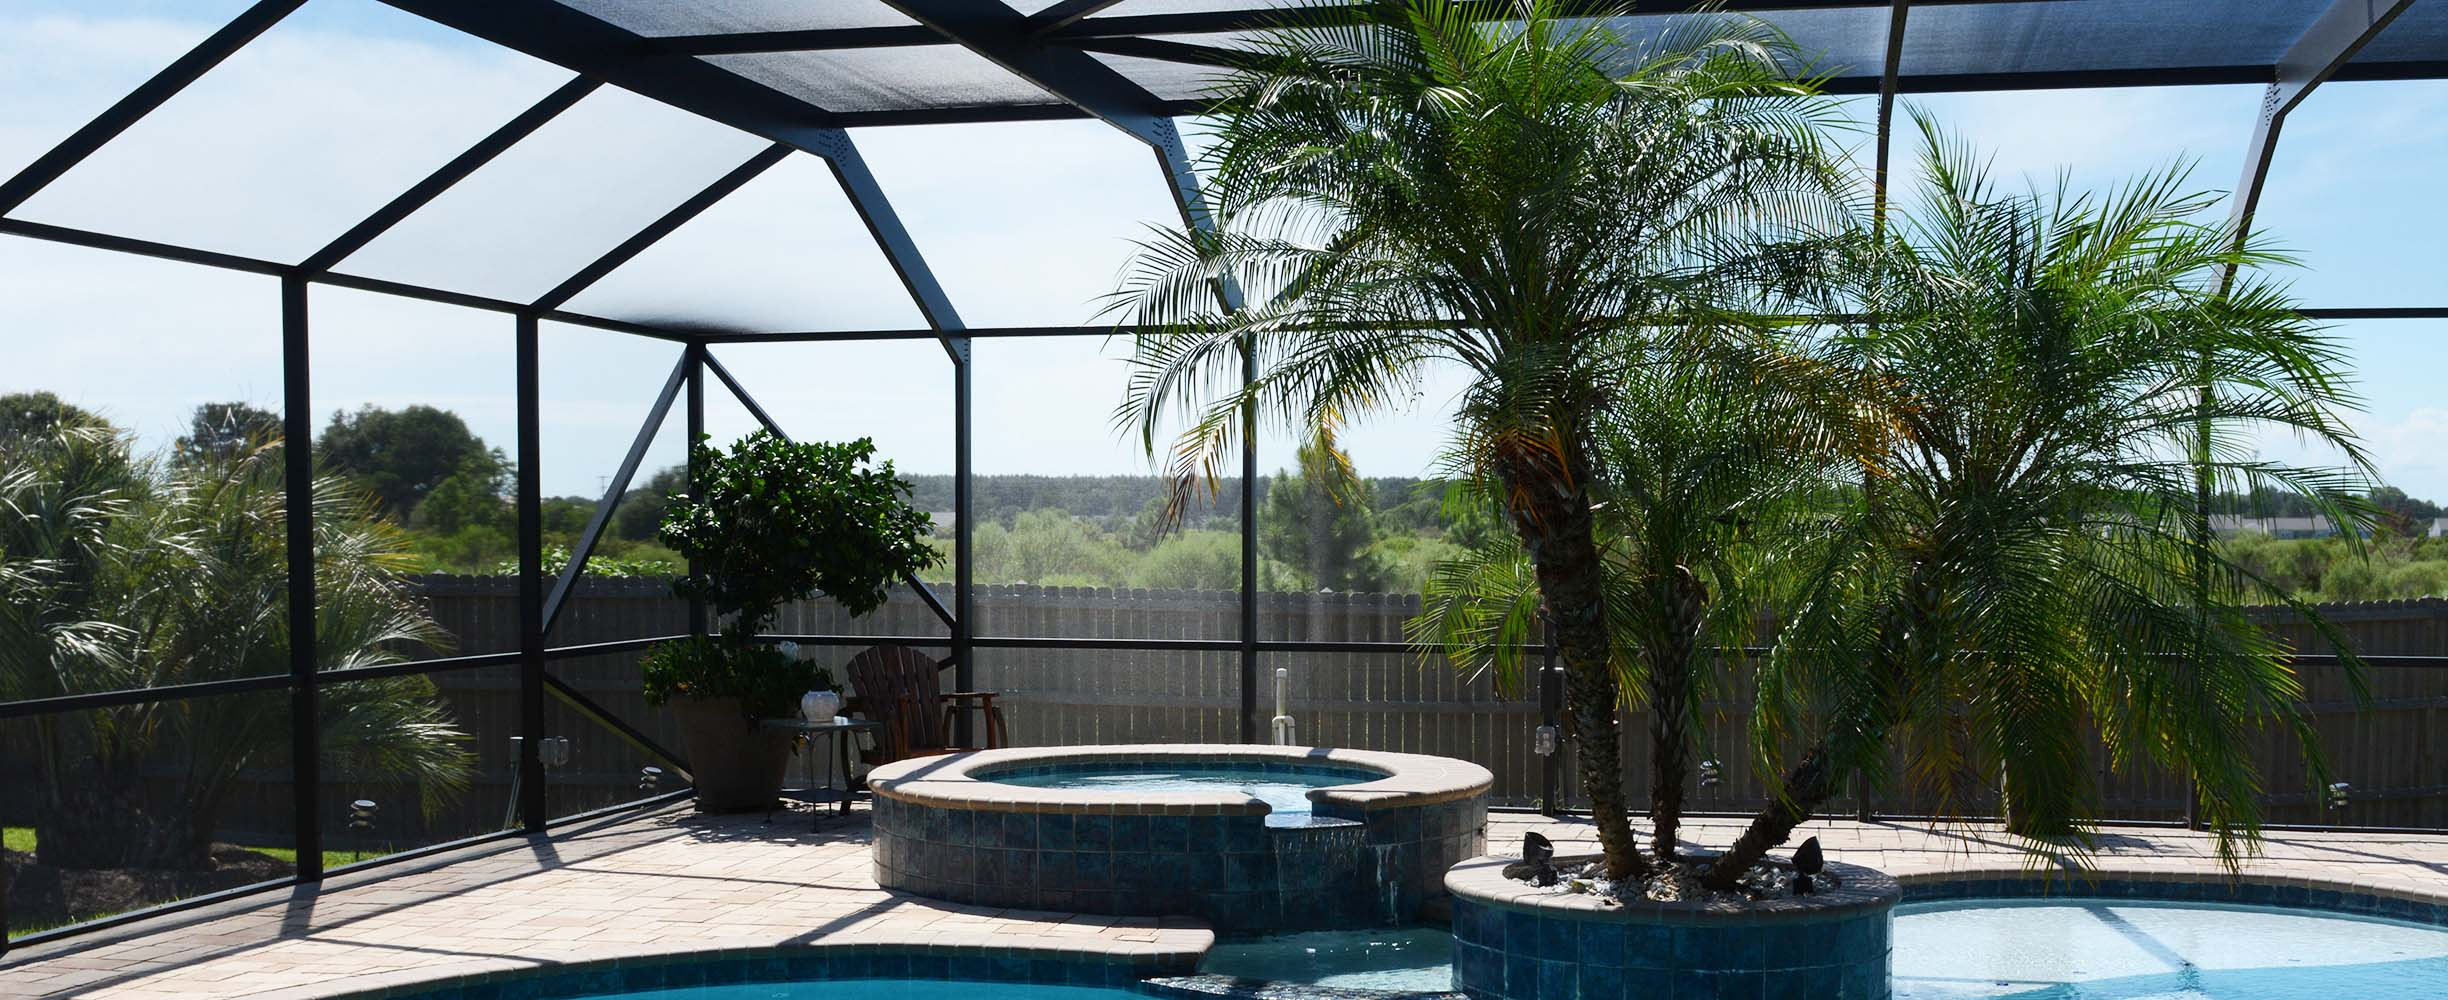 Sswimming pool enclosure in Baldwin County, Alabama